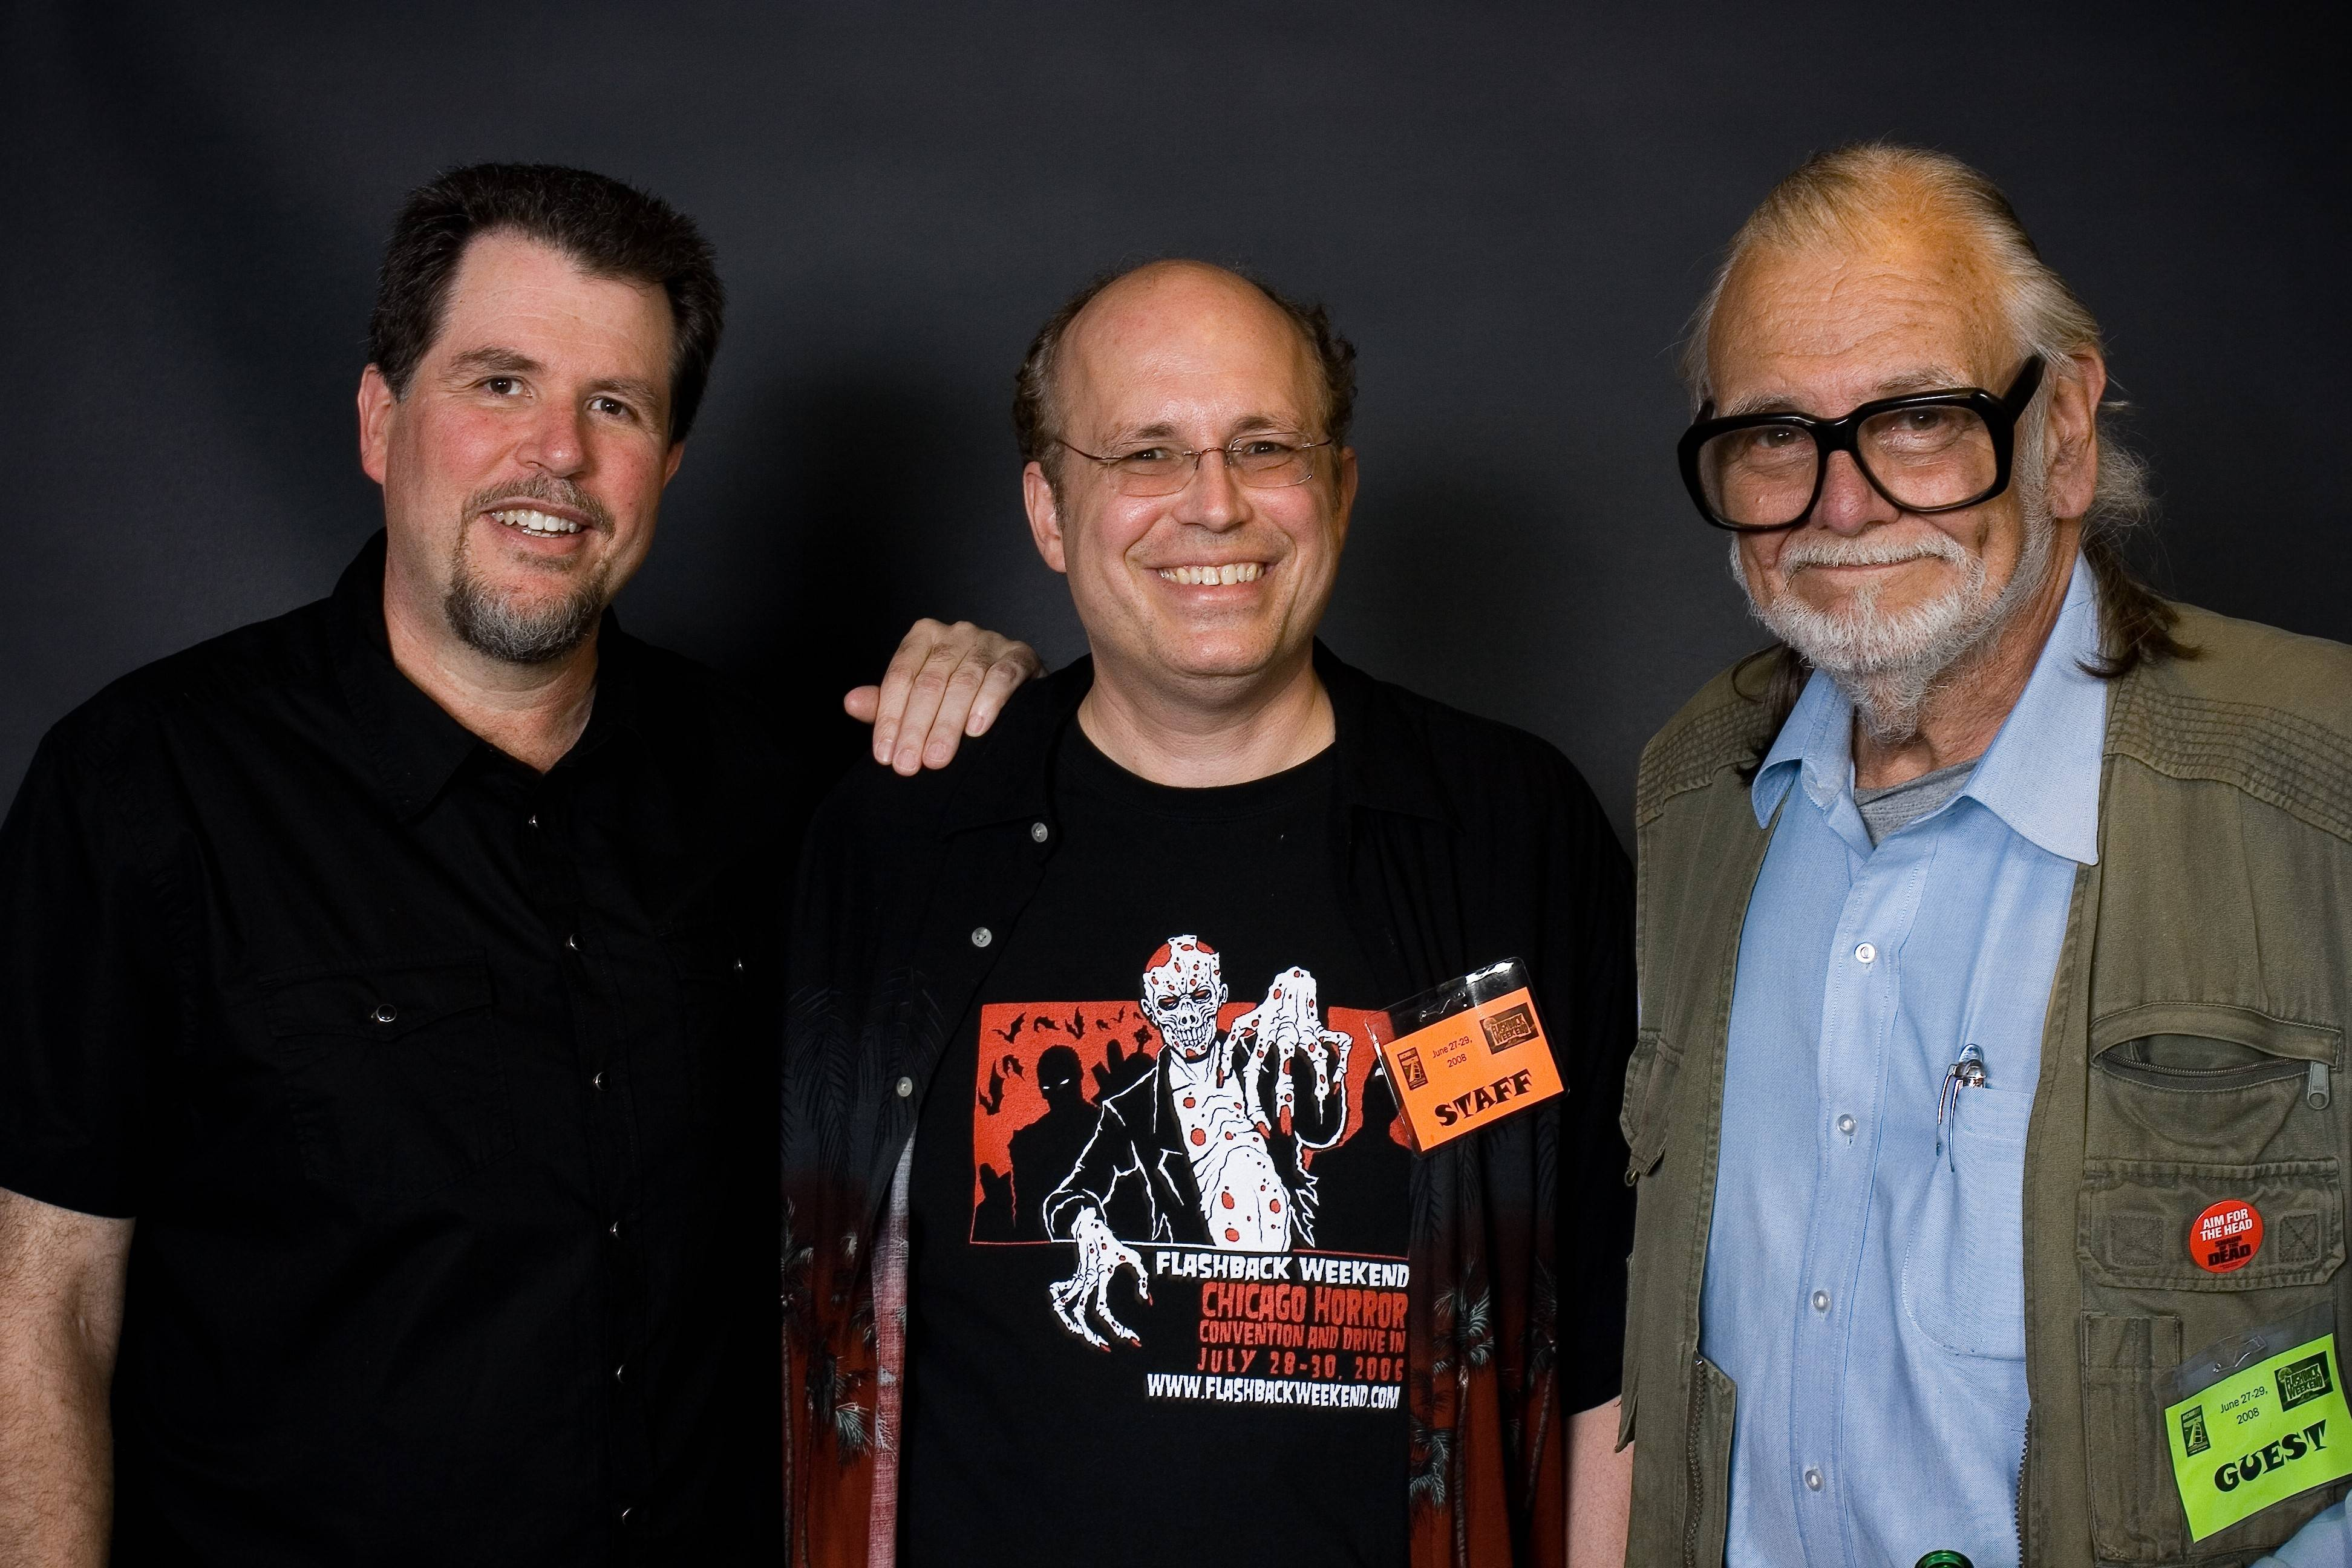 """Night of the Living Dead"" director George Romero, right, joins Flashback founder Mike Kerz, center, at the 2008  Flashback Weekend Horror Convention in Rosemont. Don Coscarelli, director of the cult hit ""Phantasm,"" is at the left."